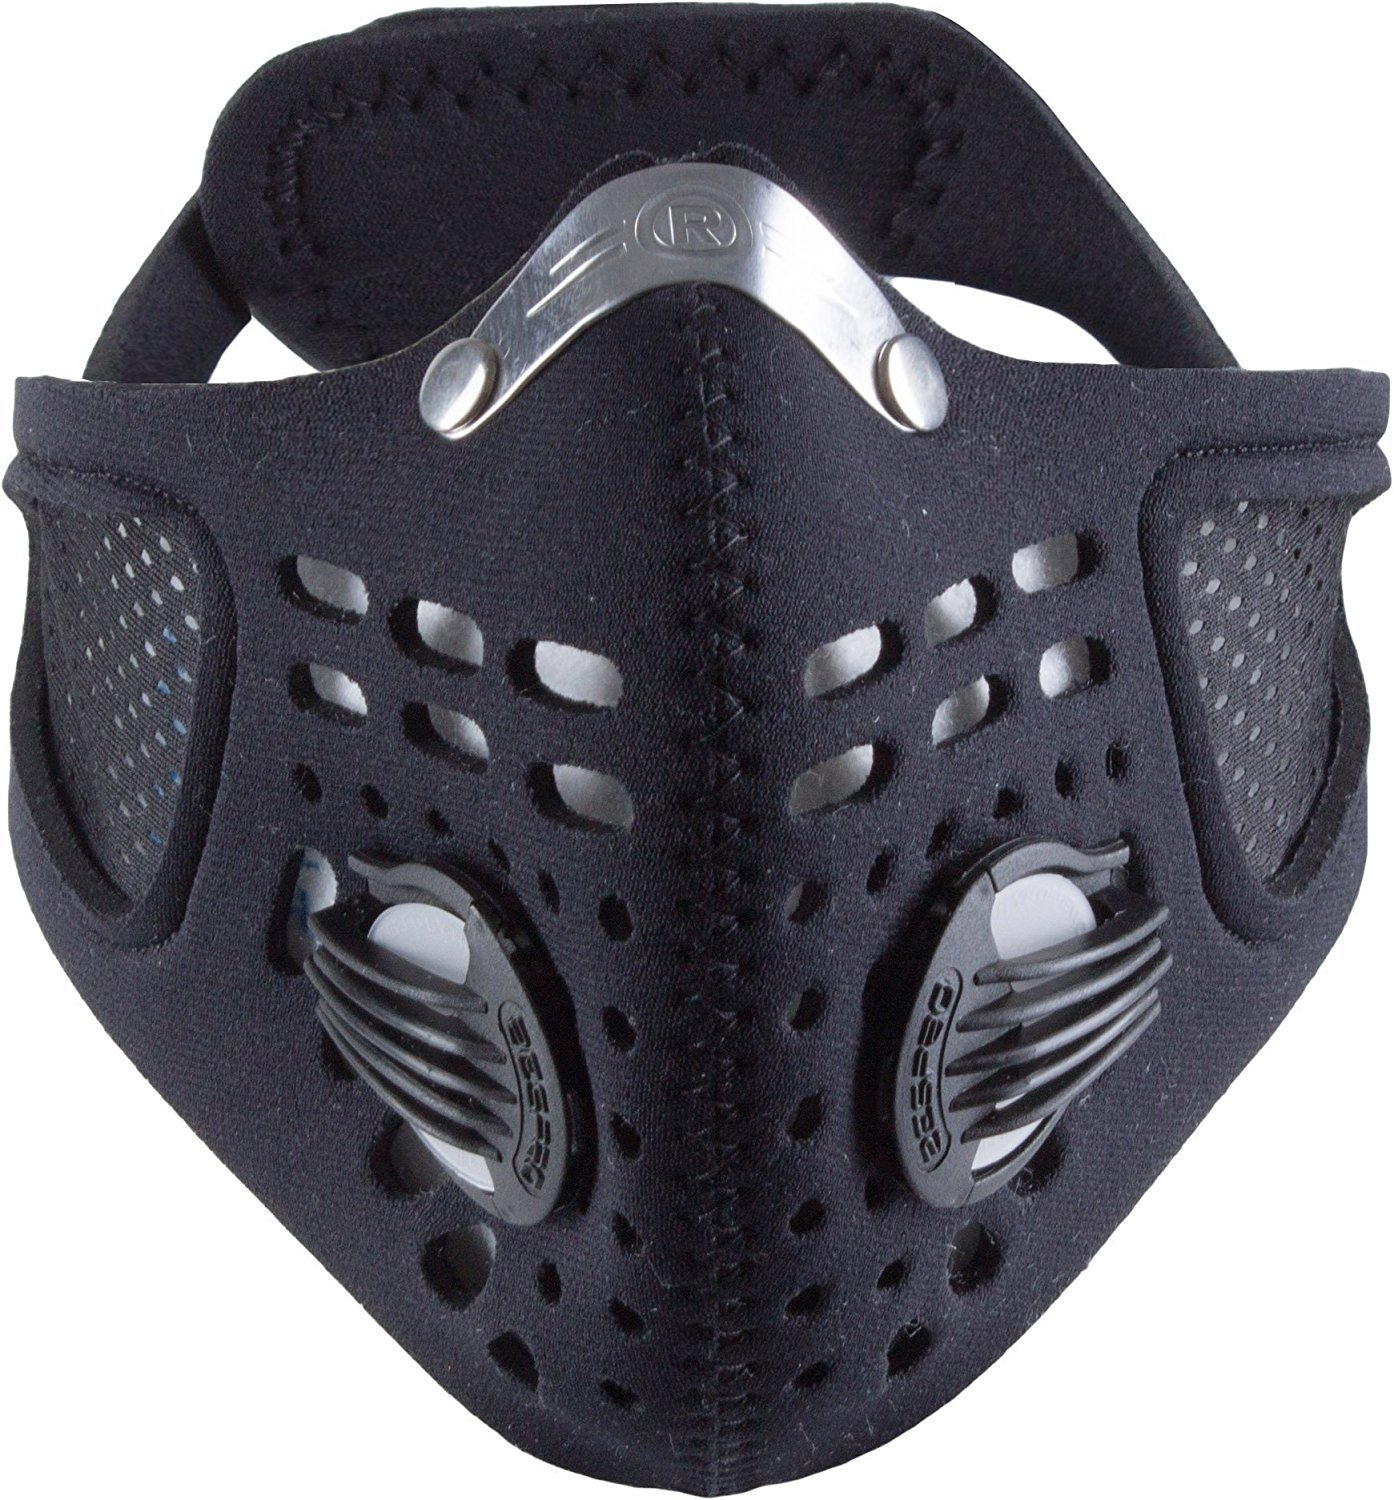 Respro Sportsta Face Mask - Large by Respro